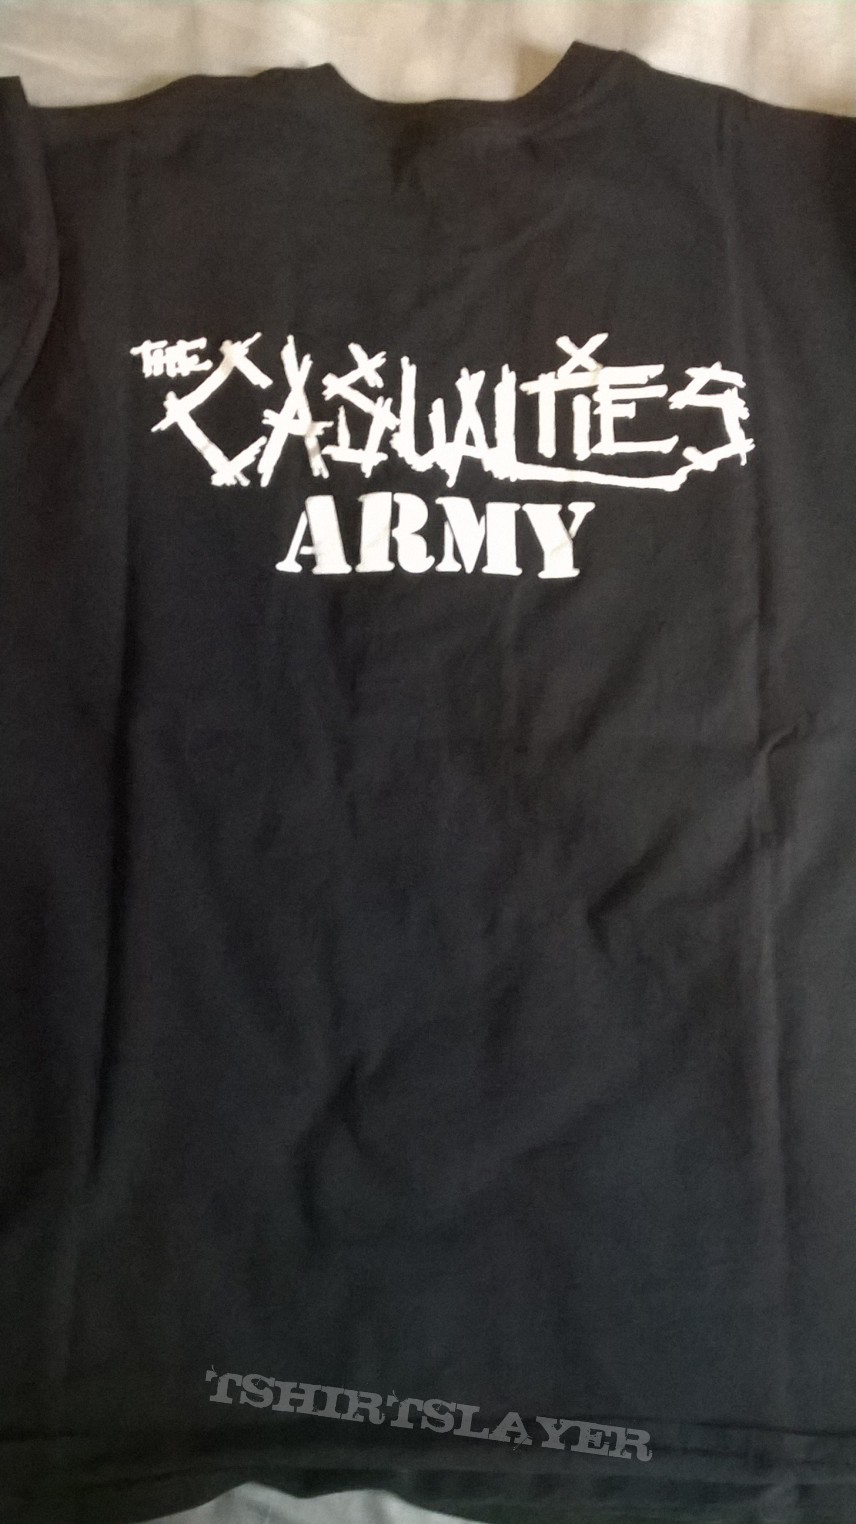 The Casualties - Resistance - The Casualties Army